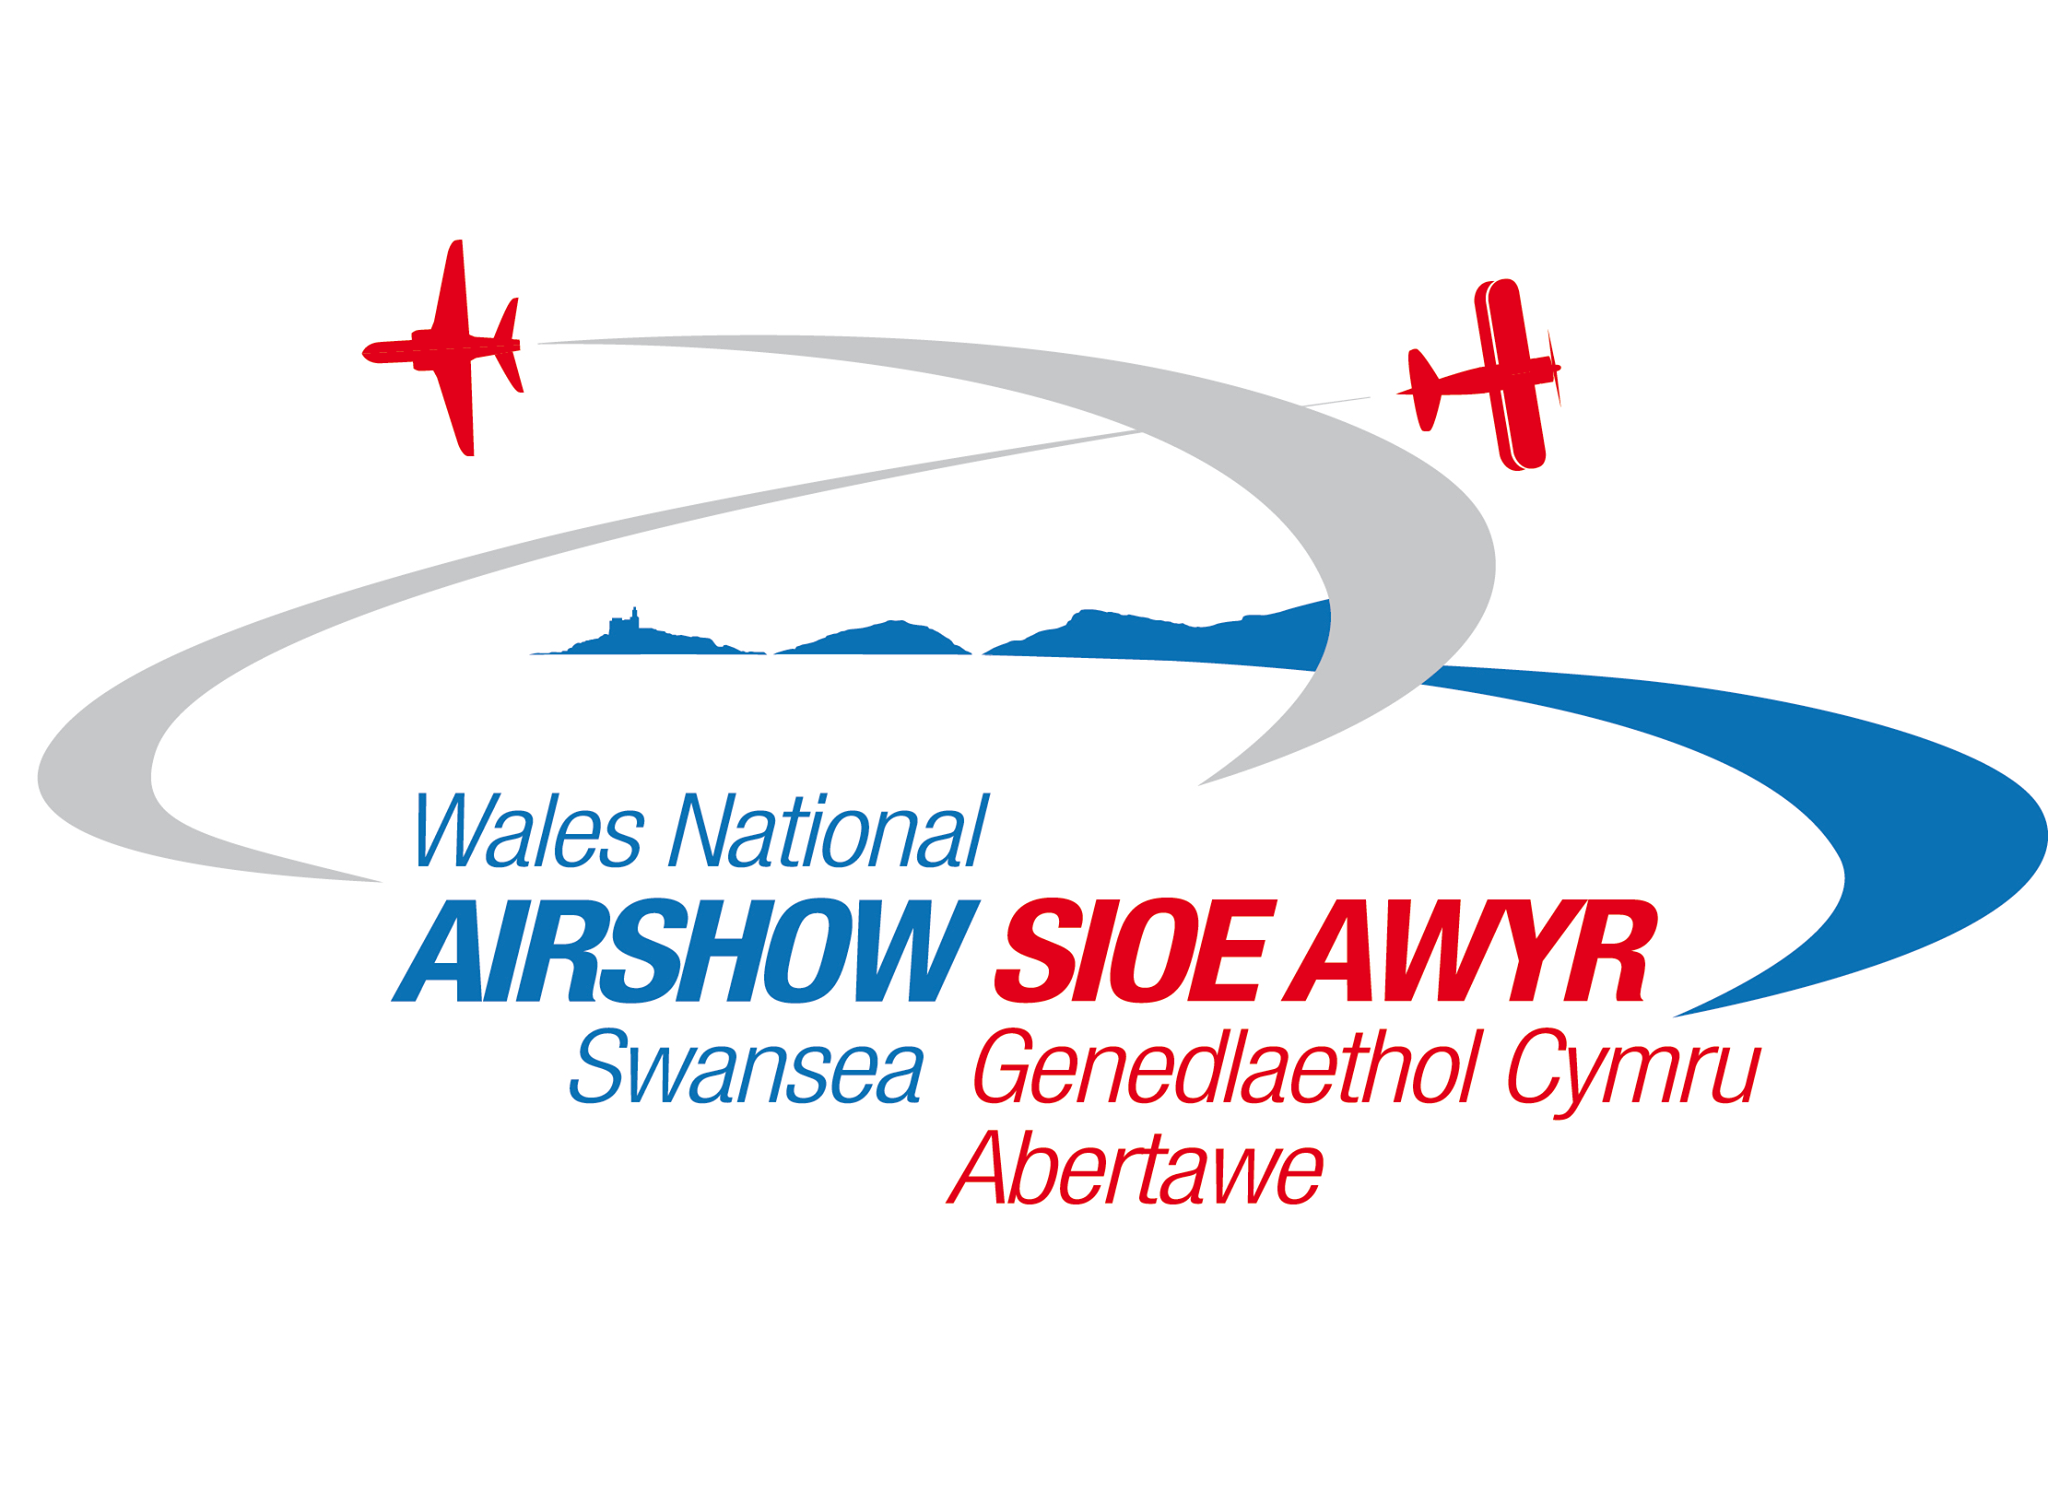 Wales National Airshow